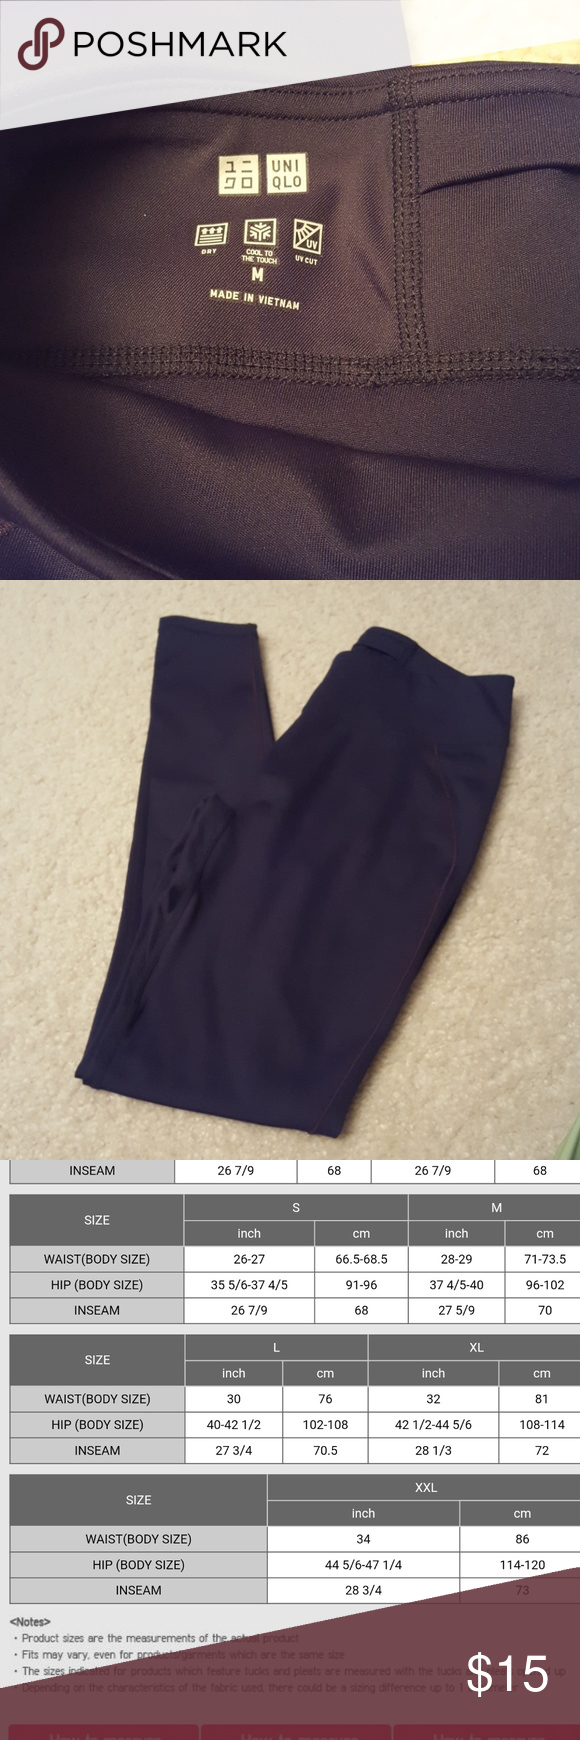 Uniqlo Airism Leggings Nwot Leggings In Size Medium Please Refer To Uniqlo Sizing Chart 85 Polyester 15 Spandex Clothes Design Fashion Tips Uniqlo Pants